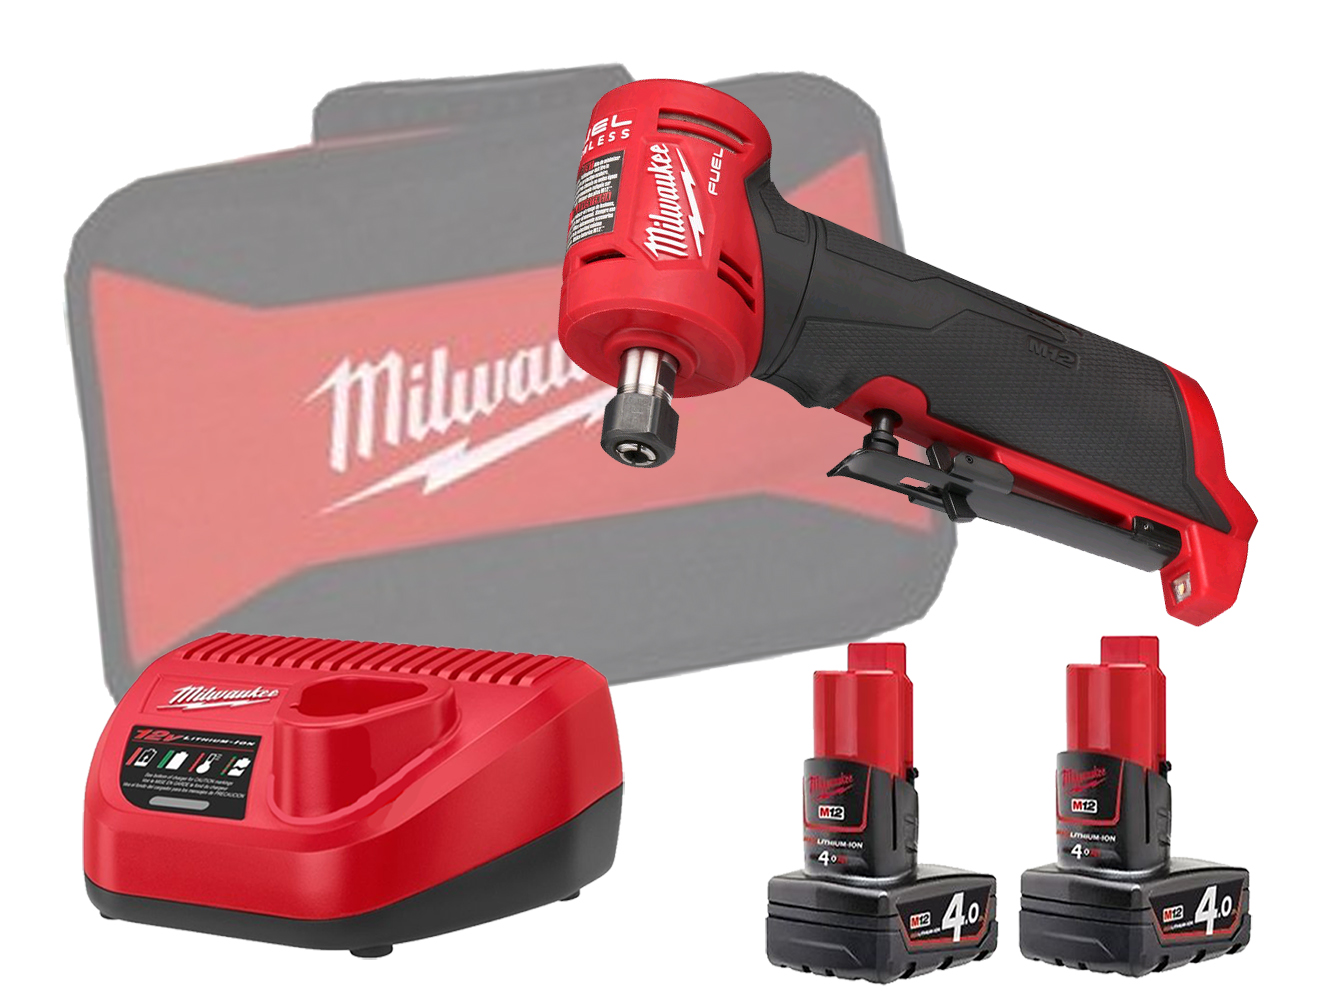 Milwaukee M12FDGA 12V FUEL Brushless Angled Die Grinder - 4.0ah Pack